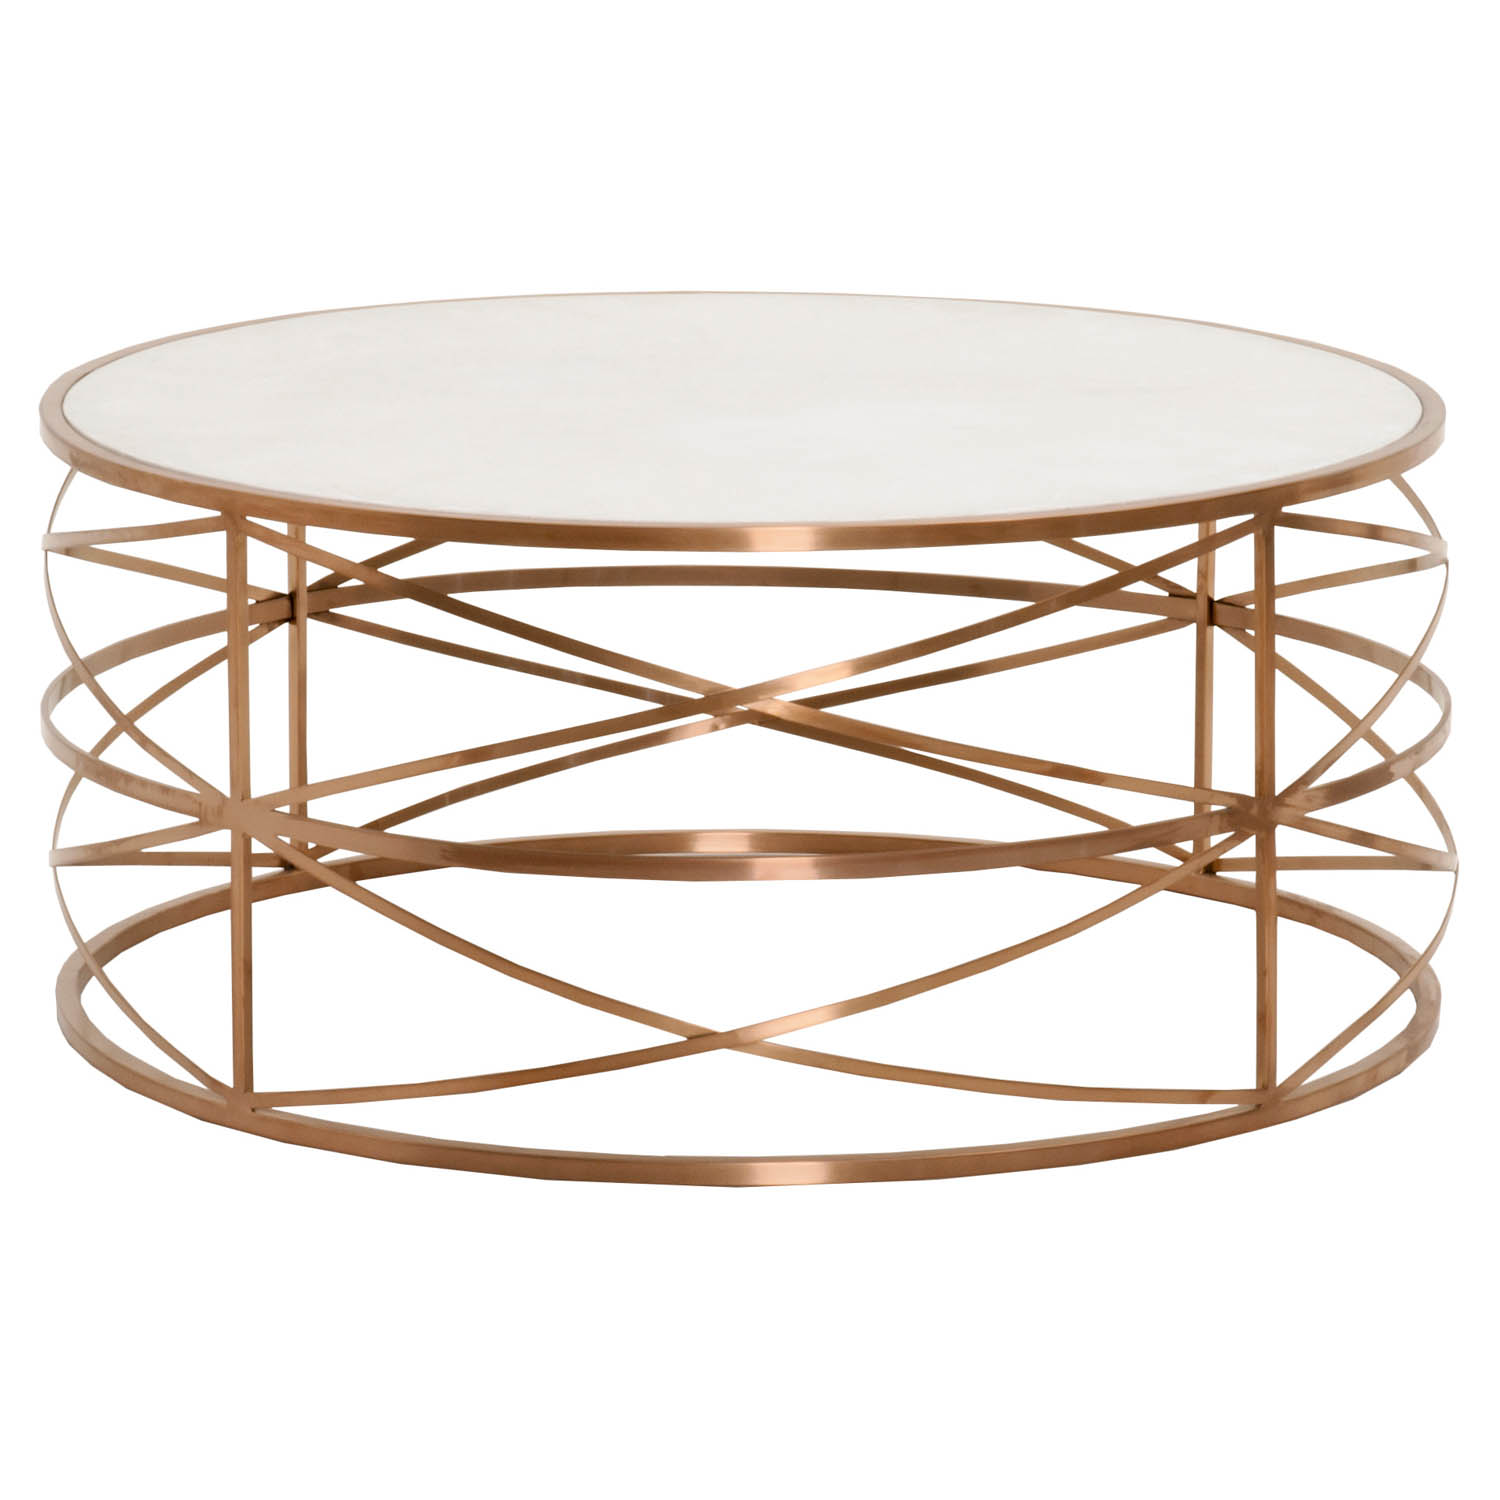 melrose round coffee table rose gold accent nate berkus bedding chairs with very narrow hall brass nest tables contemporary clocks outdoor furniture retailers dale tiffany lamps